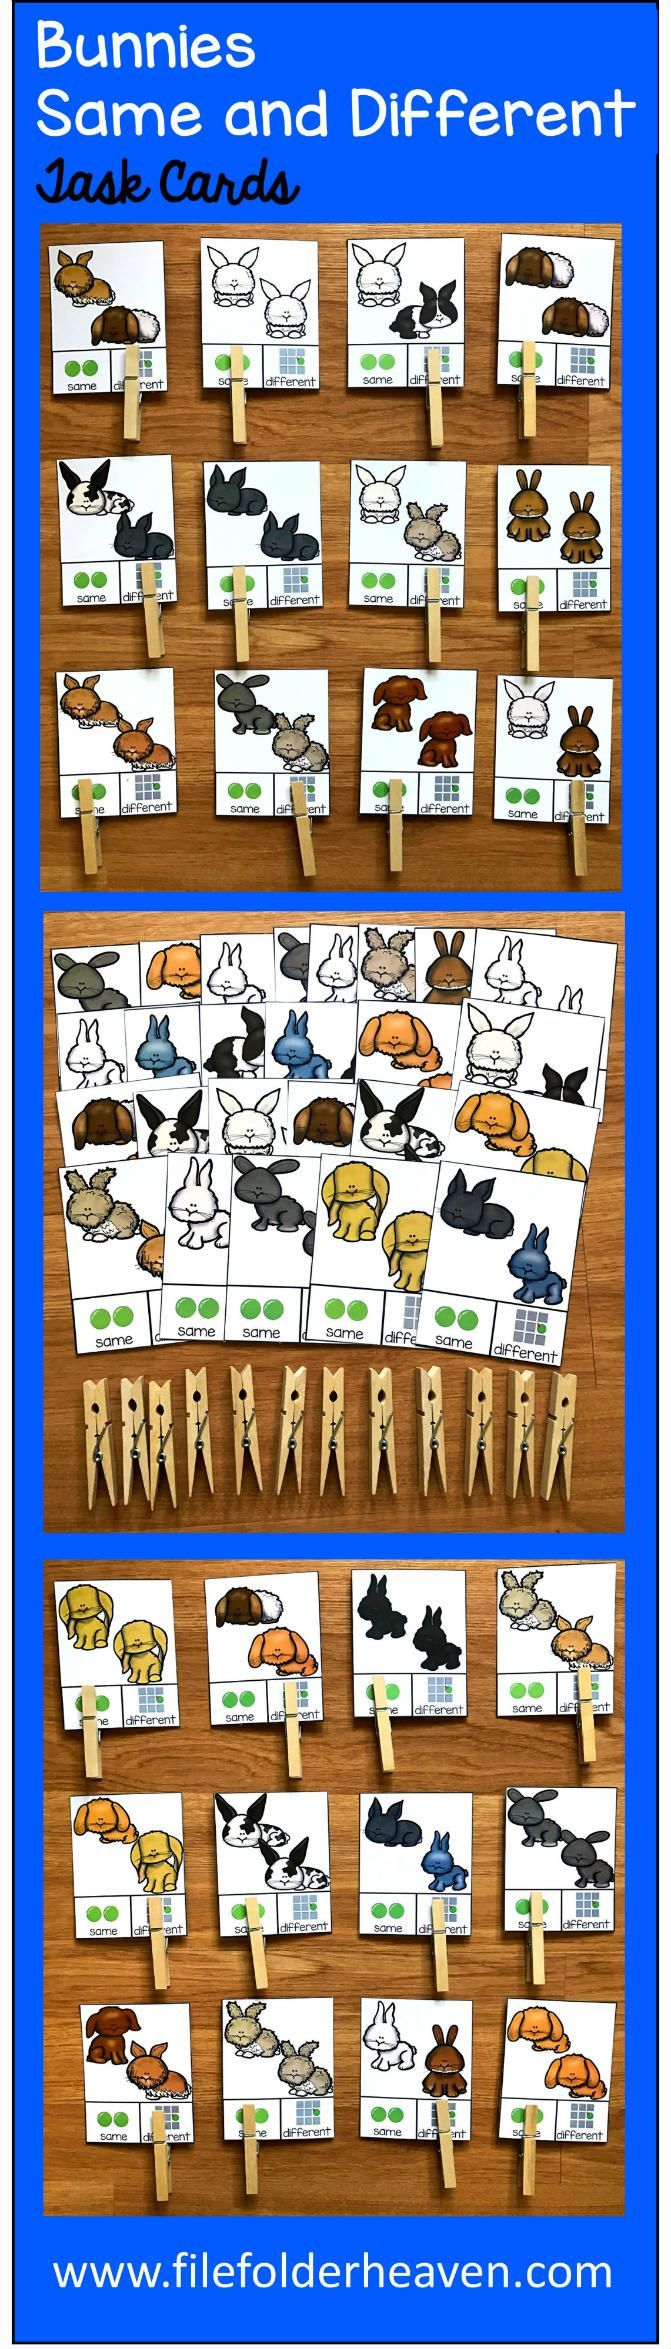 These Same and Different Bunnies Task Cards  focus visual discrimination skills using bunny themed pictures and includes many different breeds of rabbits and bunnies. There are 40 task cards included. With each card, students will look at the picture and determine if the bunnies are the same or different.  Use these task cards in independent workstations, learning centers or a small group setting.